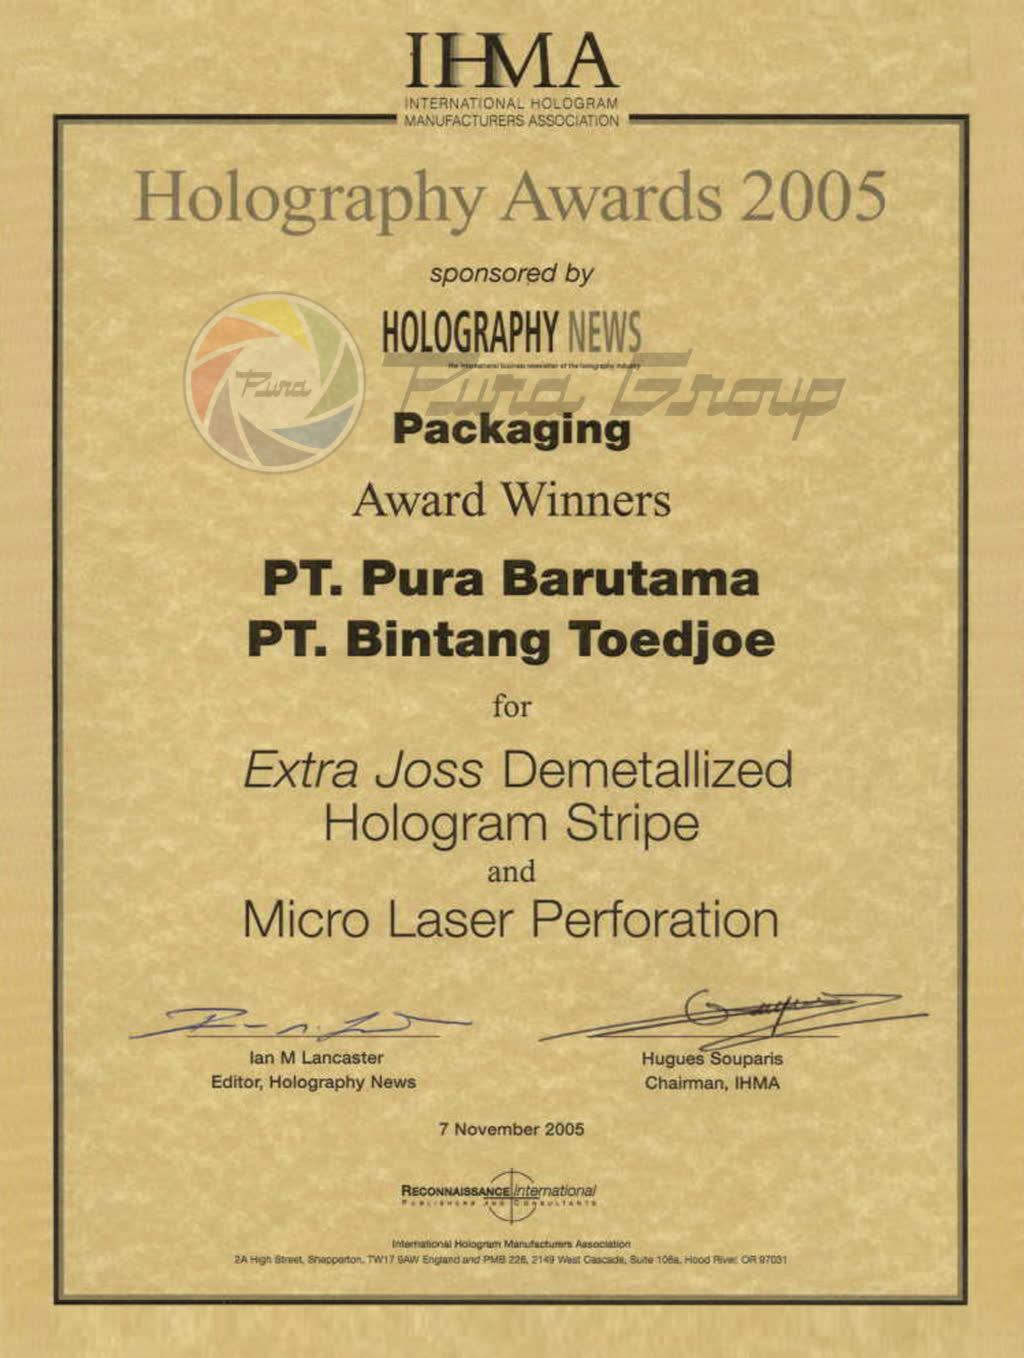 IHMA AWARDS 2005 FOR HOLOGRAM PACKAGING